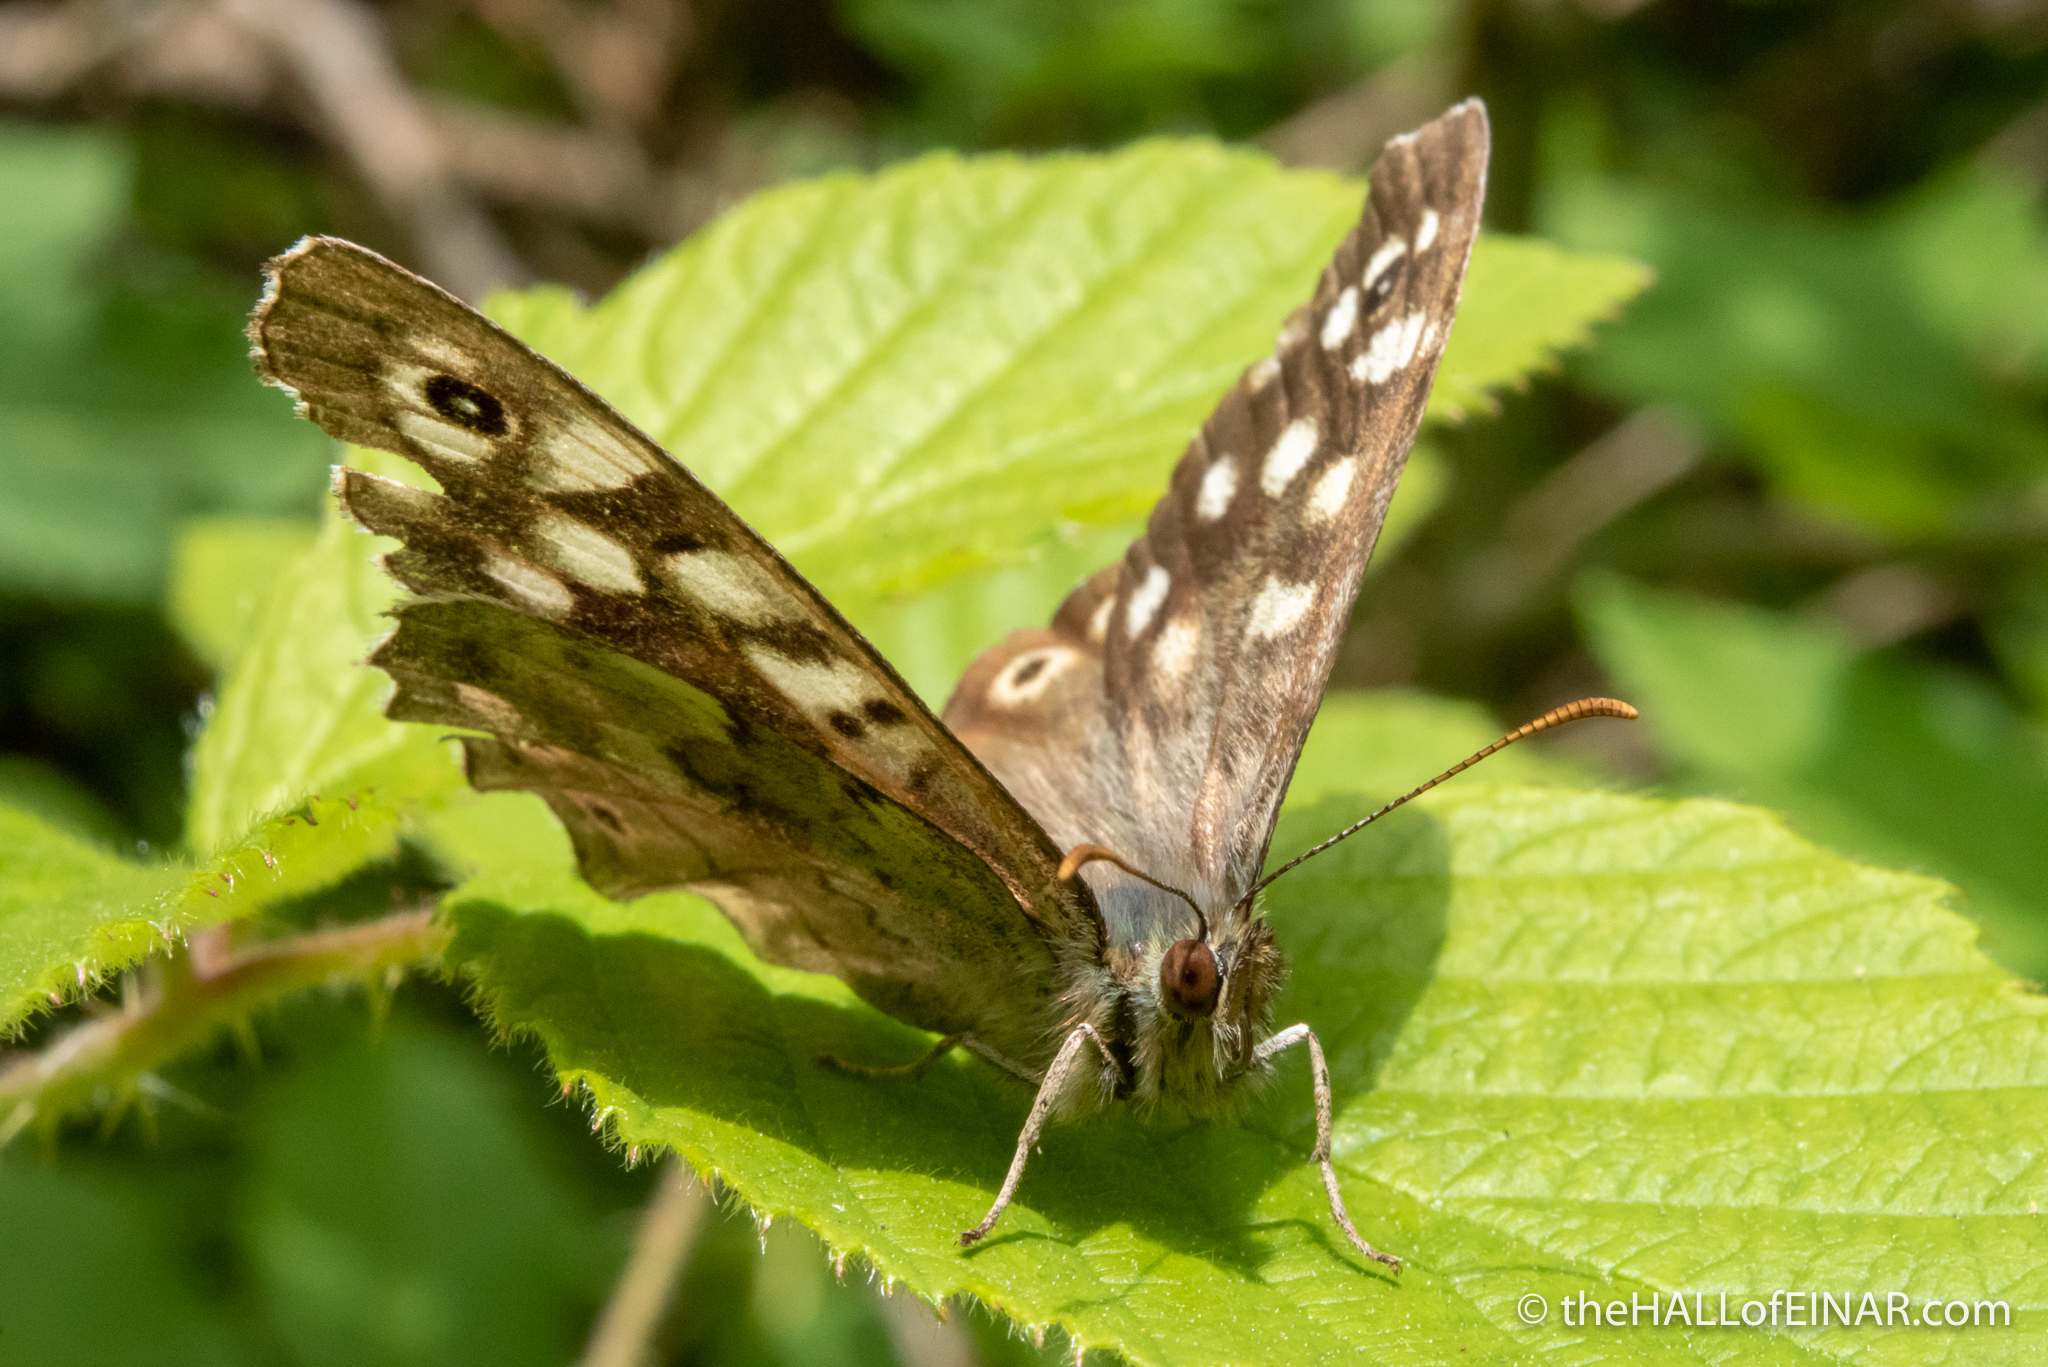 Speckled Wood butterfly - The Hall of Einar - photograph (c) David Bailey (not the)